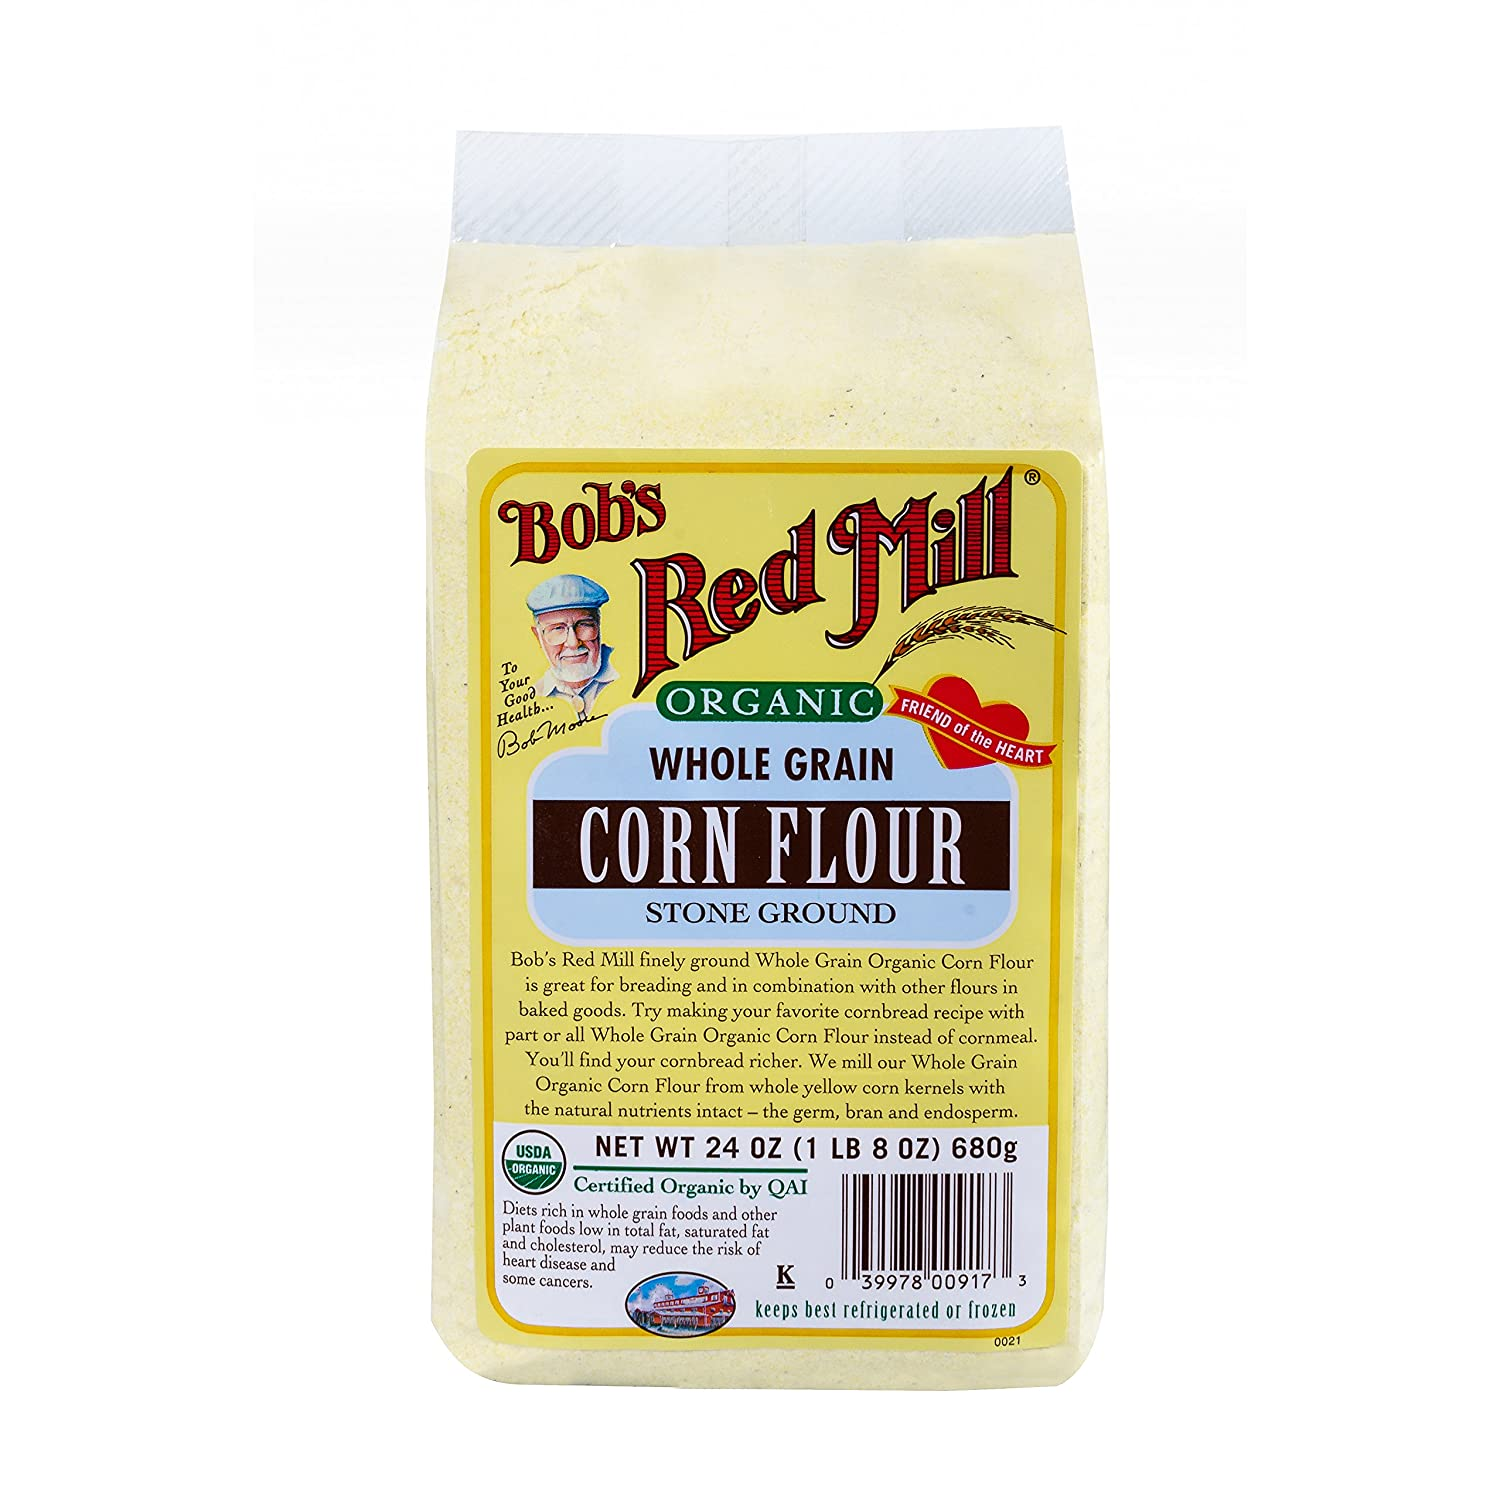 Amazon.com : Bobs Red Mill Organic Corn Flour, 25 Pound : Grocery & Gourmet Food